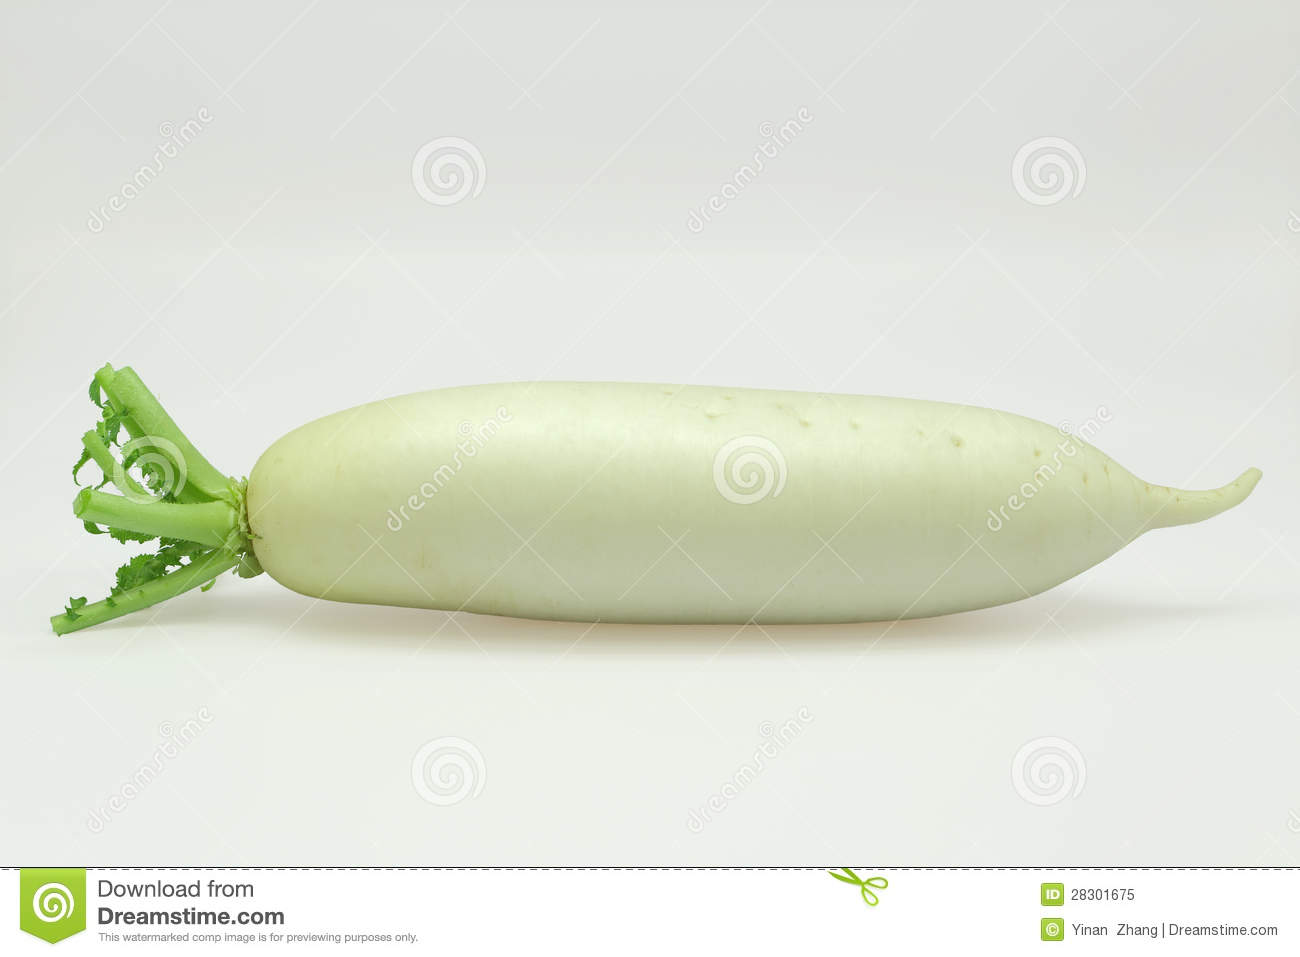 White Turnip Royalty Free Stock Photo - Image: 28301675